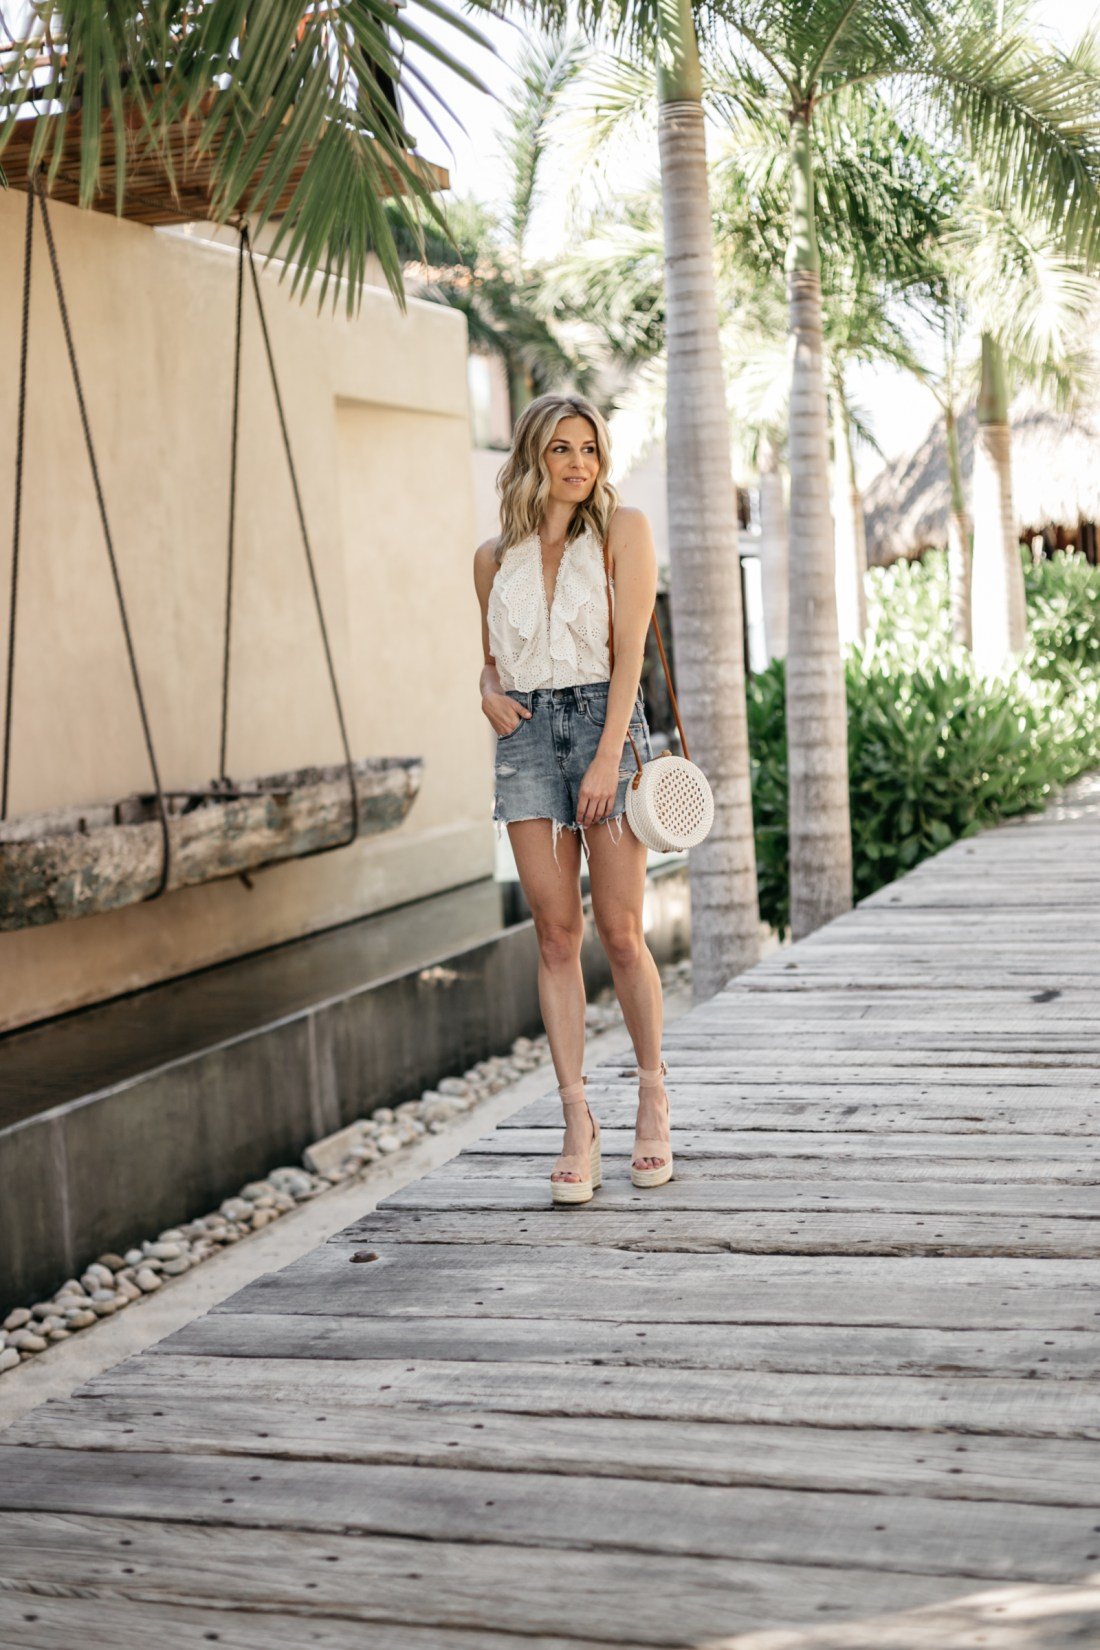 Brooke is wearing a White Ruffle Body Suit // Jean Shorts // Tan Wedges // Circle Rattan Bag